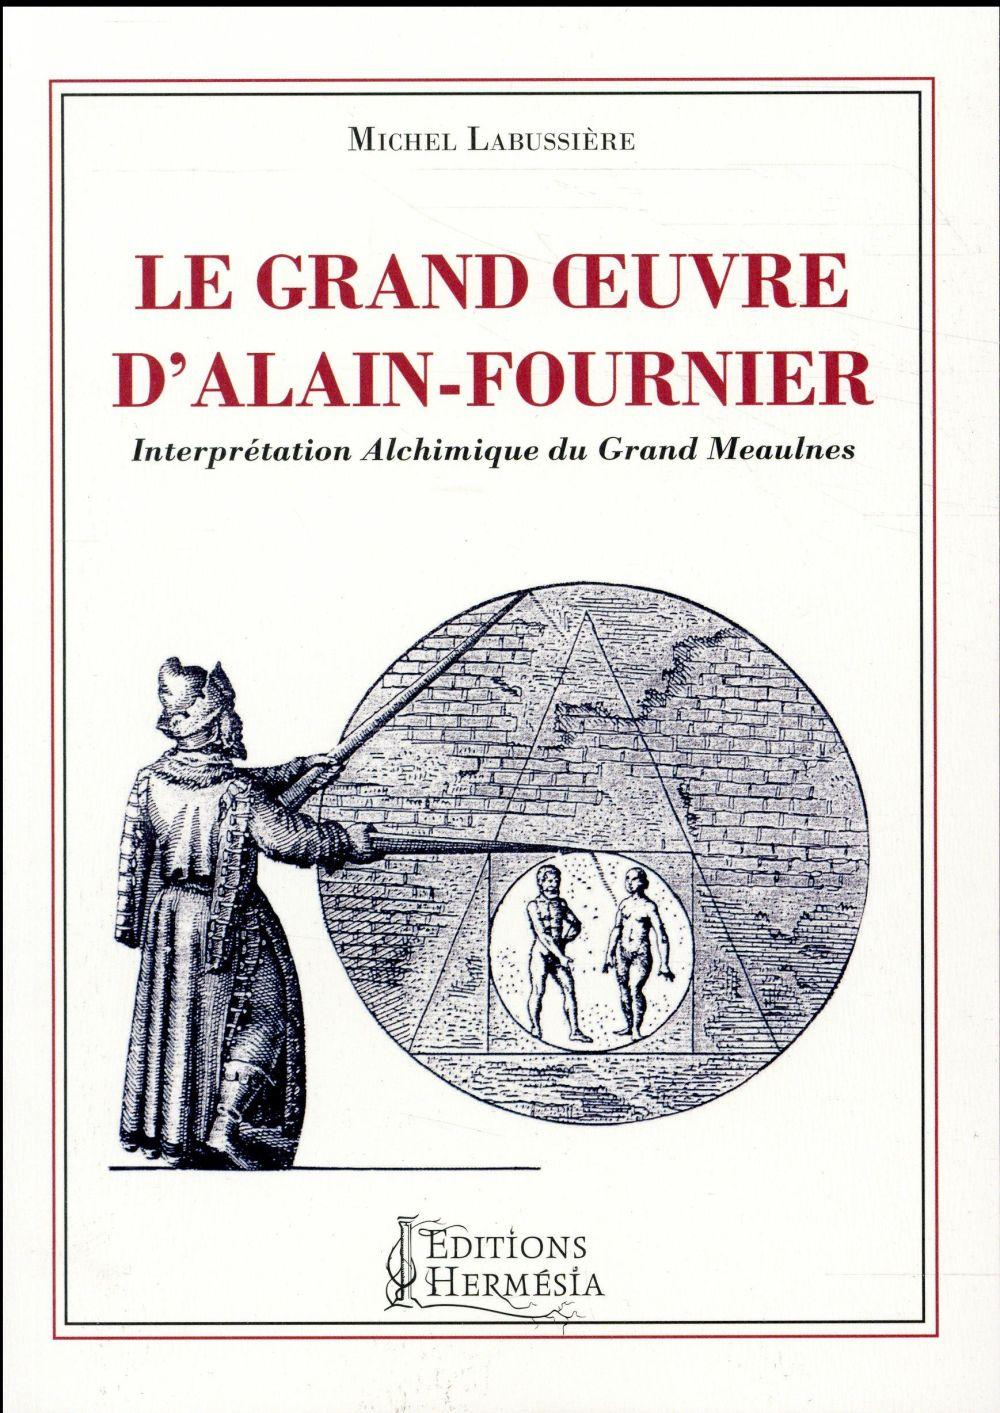 Le grand oeuvre d'Alain Fournier ; interprétation alchimique du Grand Meaulnes  - Michel Labussiere